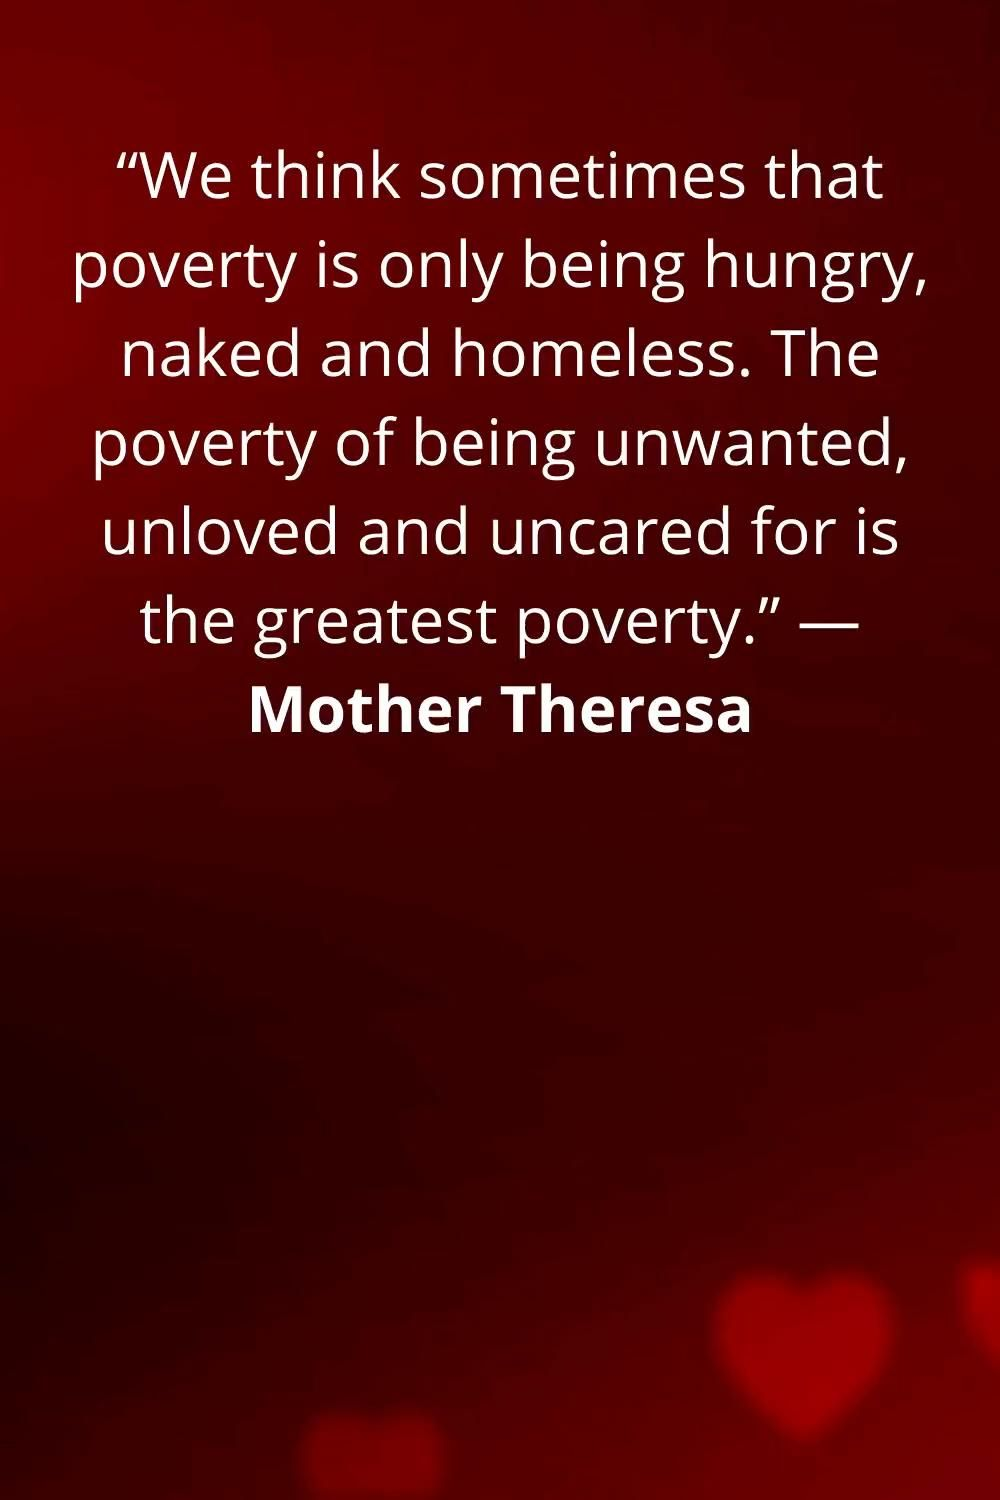 Poverty is being unwanted not hungry